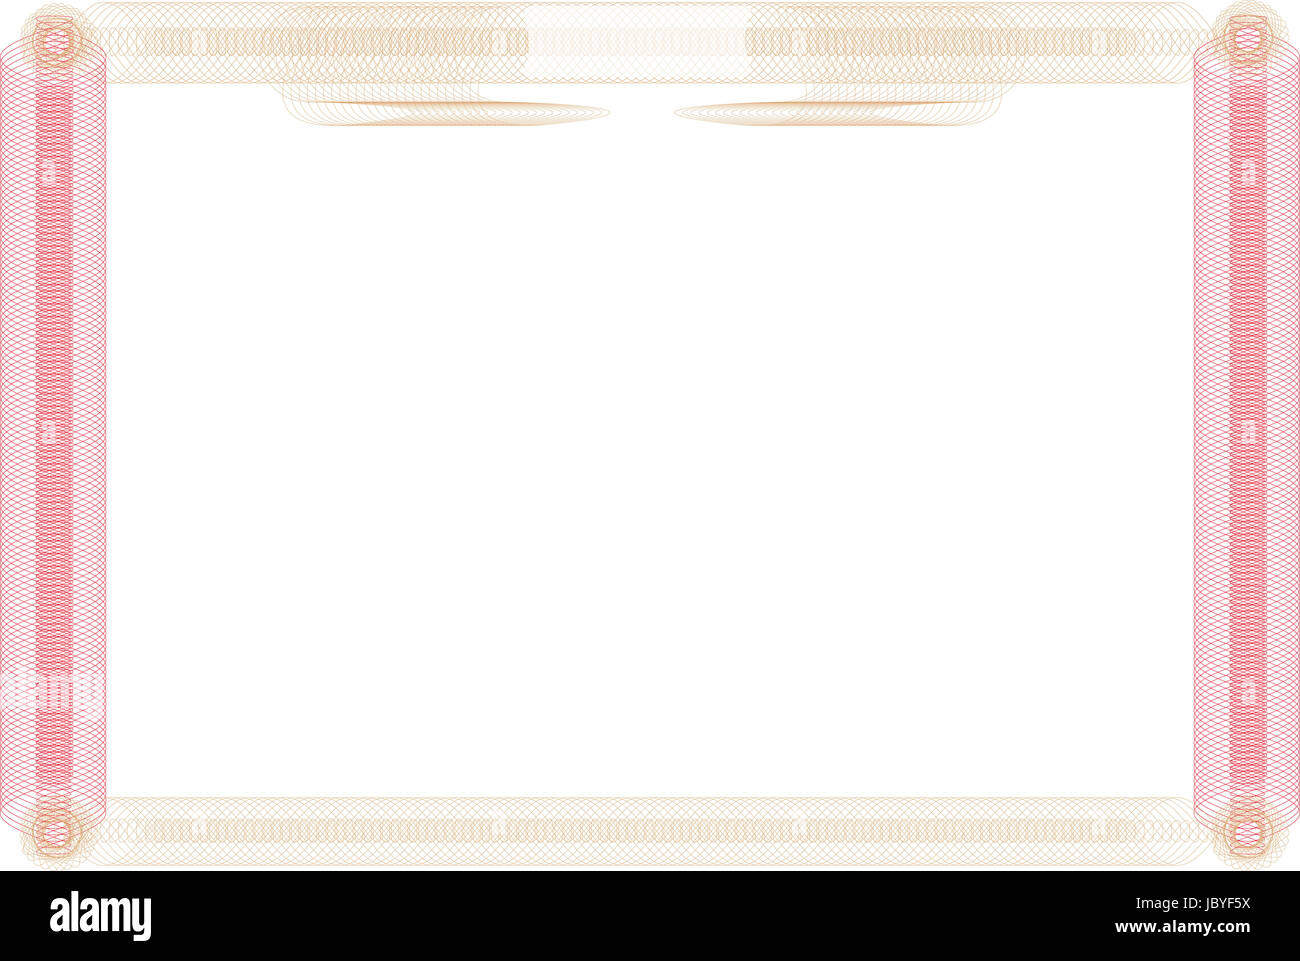 Diploma Vector Stockfotos & Diploma Vector Bilder - Alamy